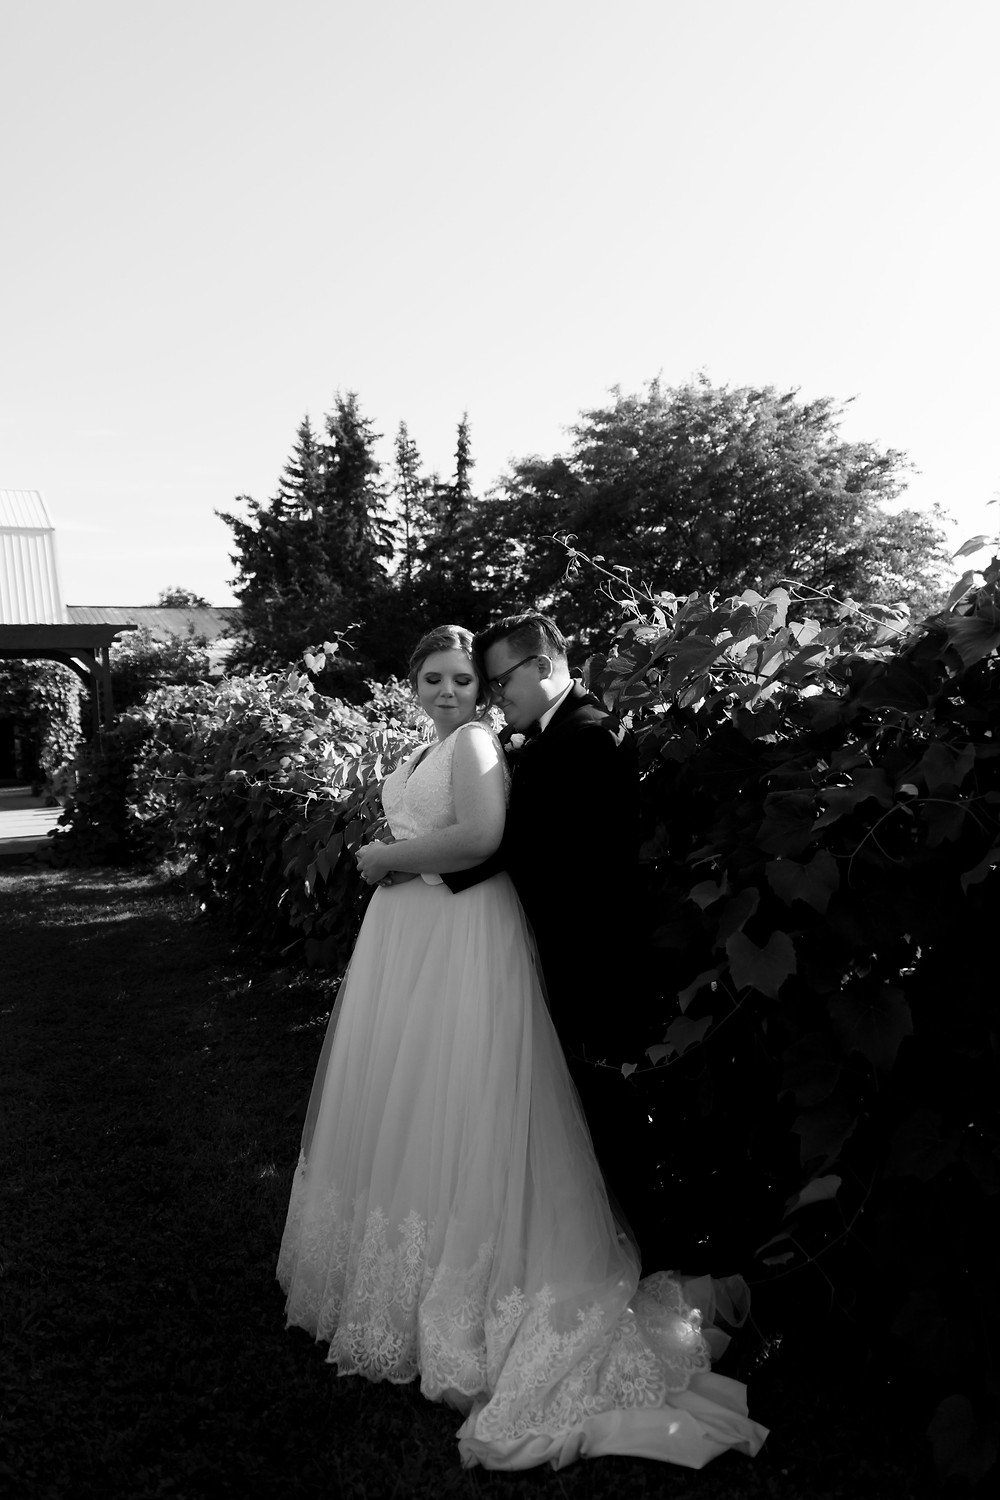 bridal portrait Becker Farms Vizcarra Vineyards Gasport NY summer wedding elopement